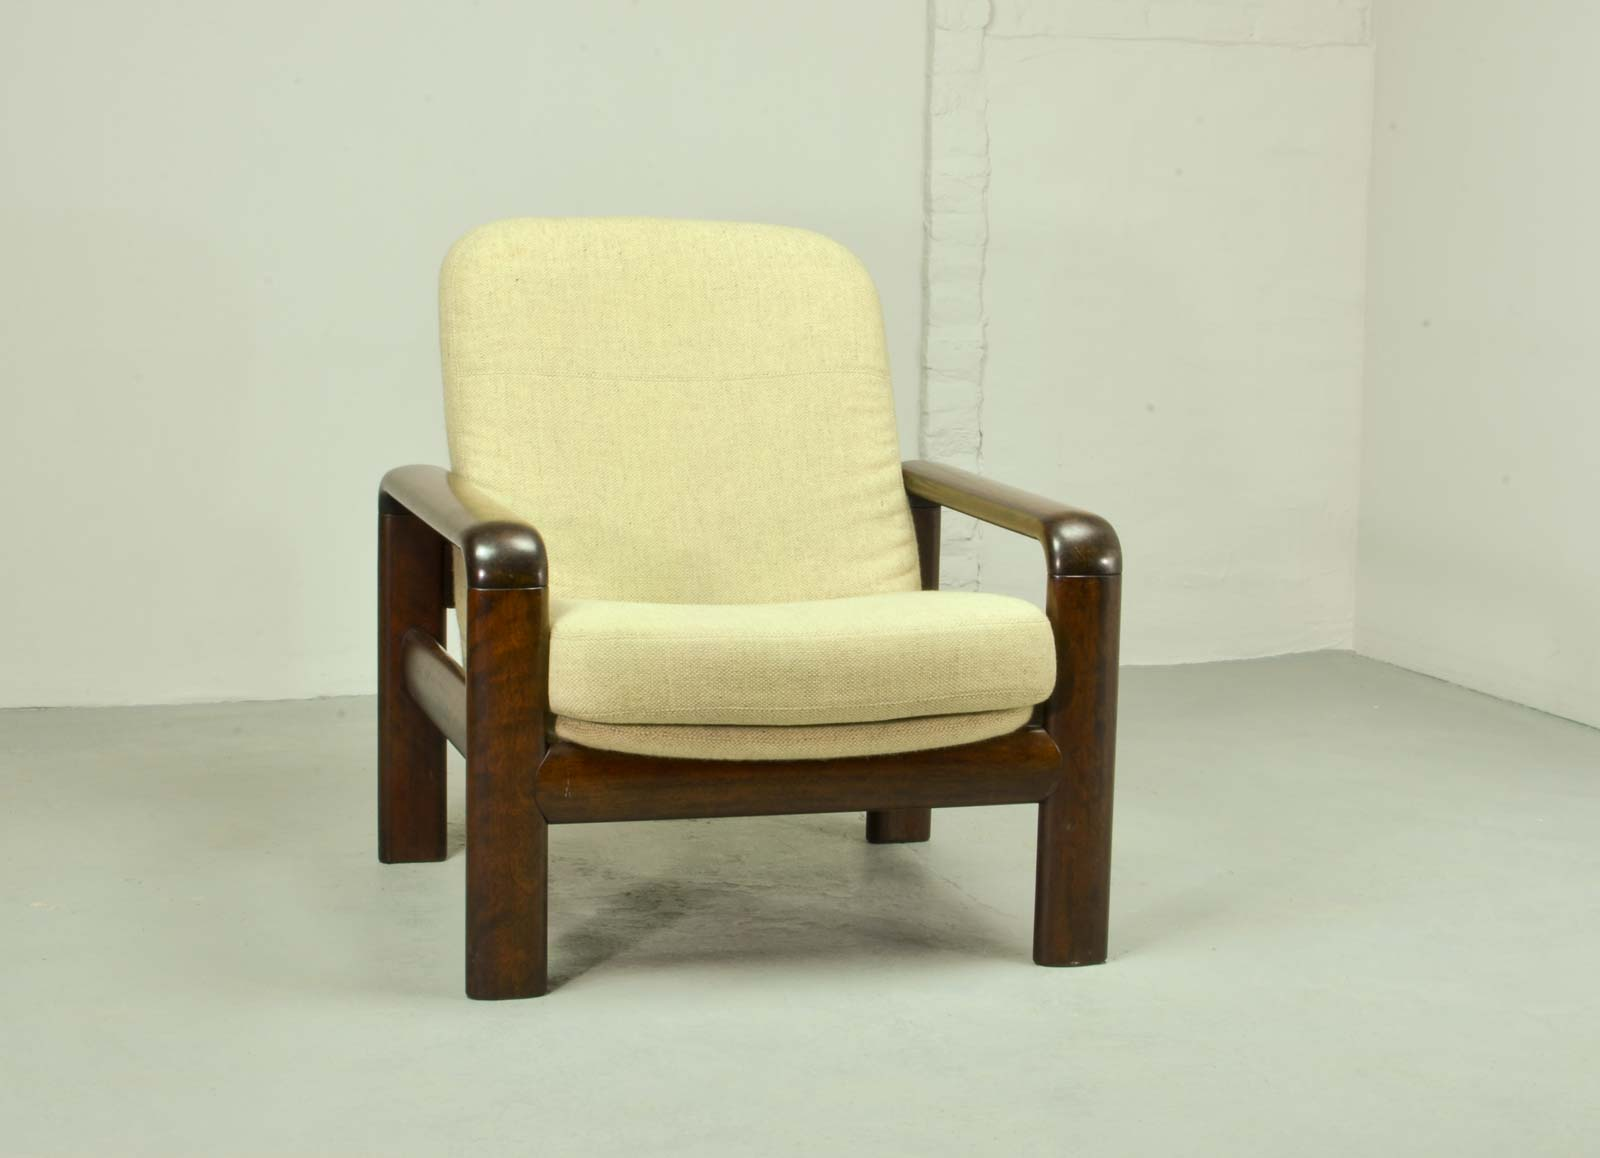 Vintage Dyrlund Shortback Lounge Chair, Scandinavian Design 1960s